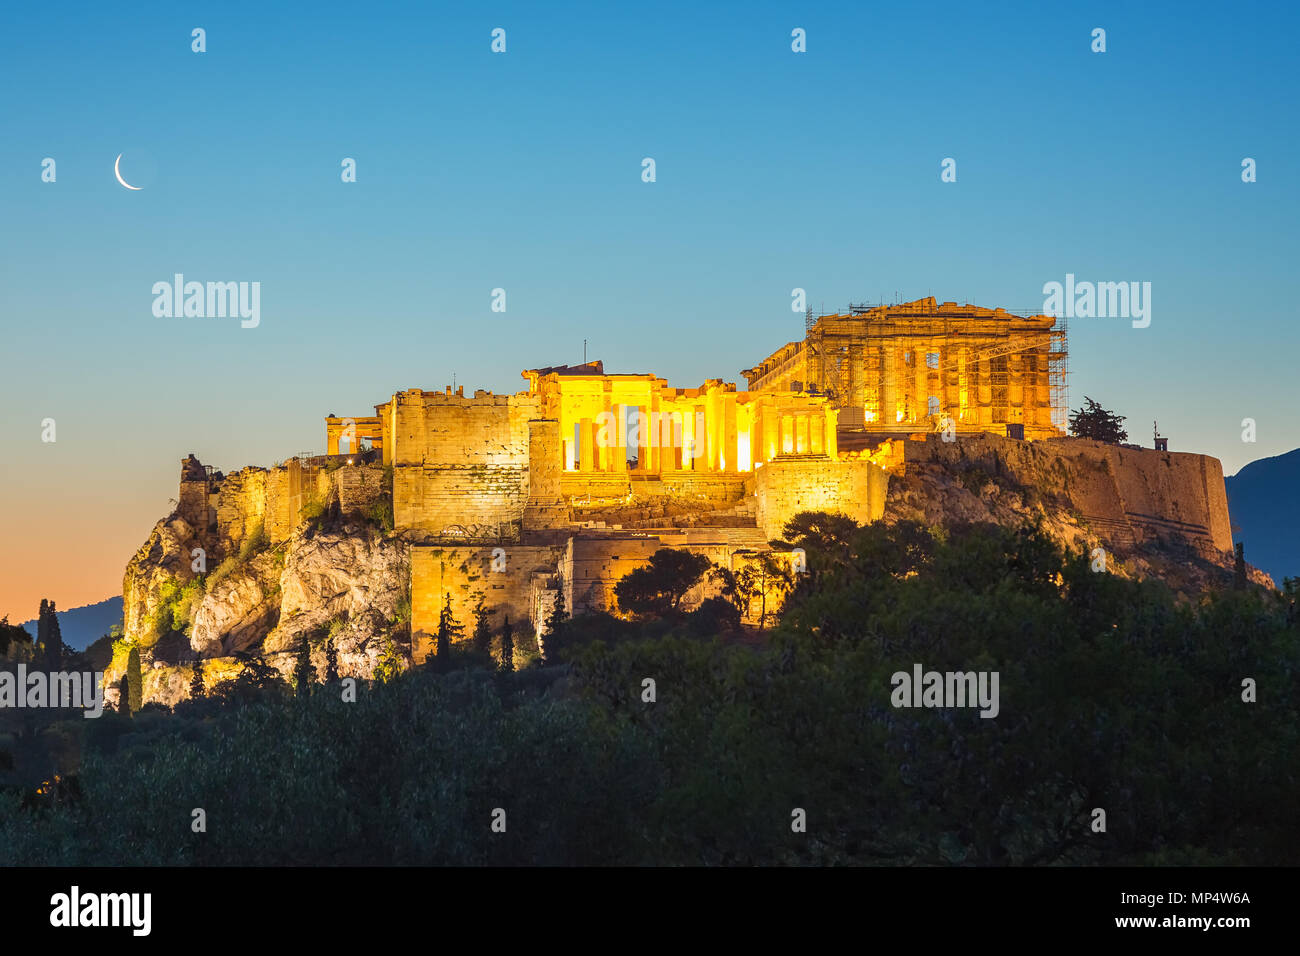 Sunrise over Parthenon, Acropolis of Athens, Greece - Stock Image